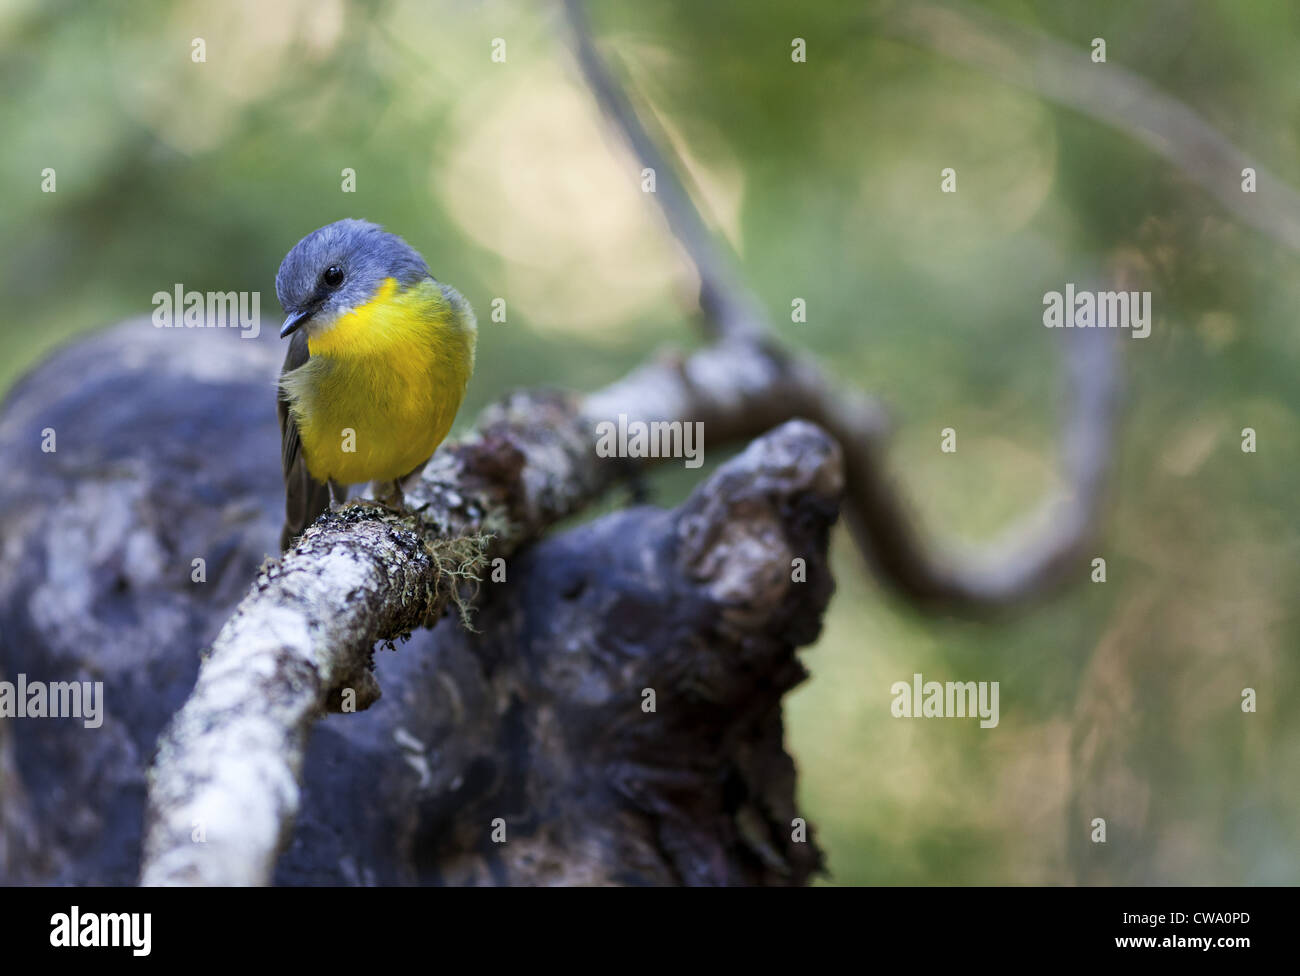 Eastern Yellow Robin, Eopsaltria australis, Australia Stock Photo